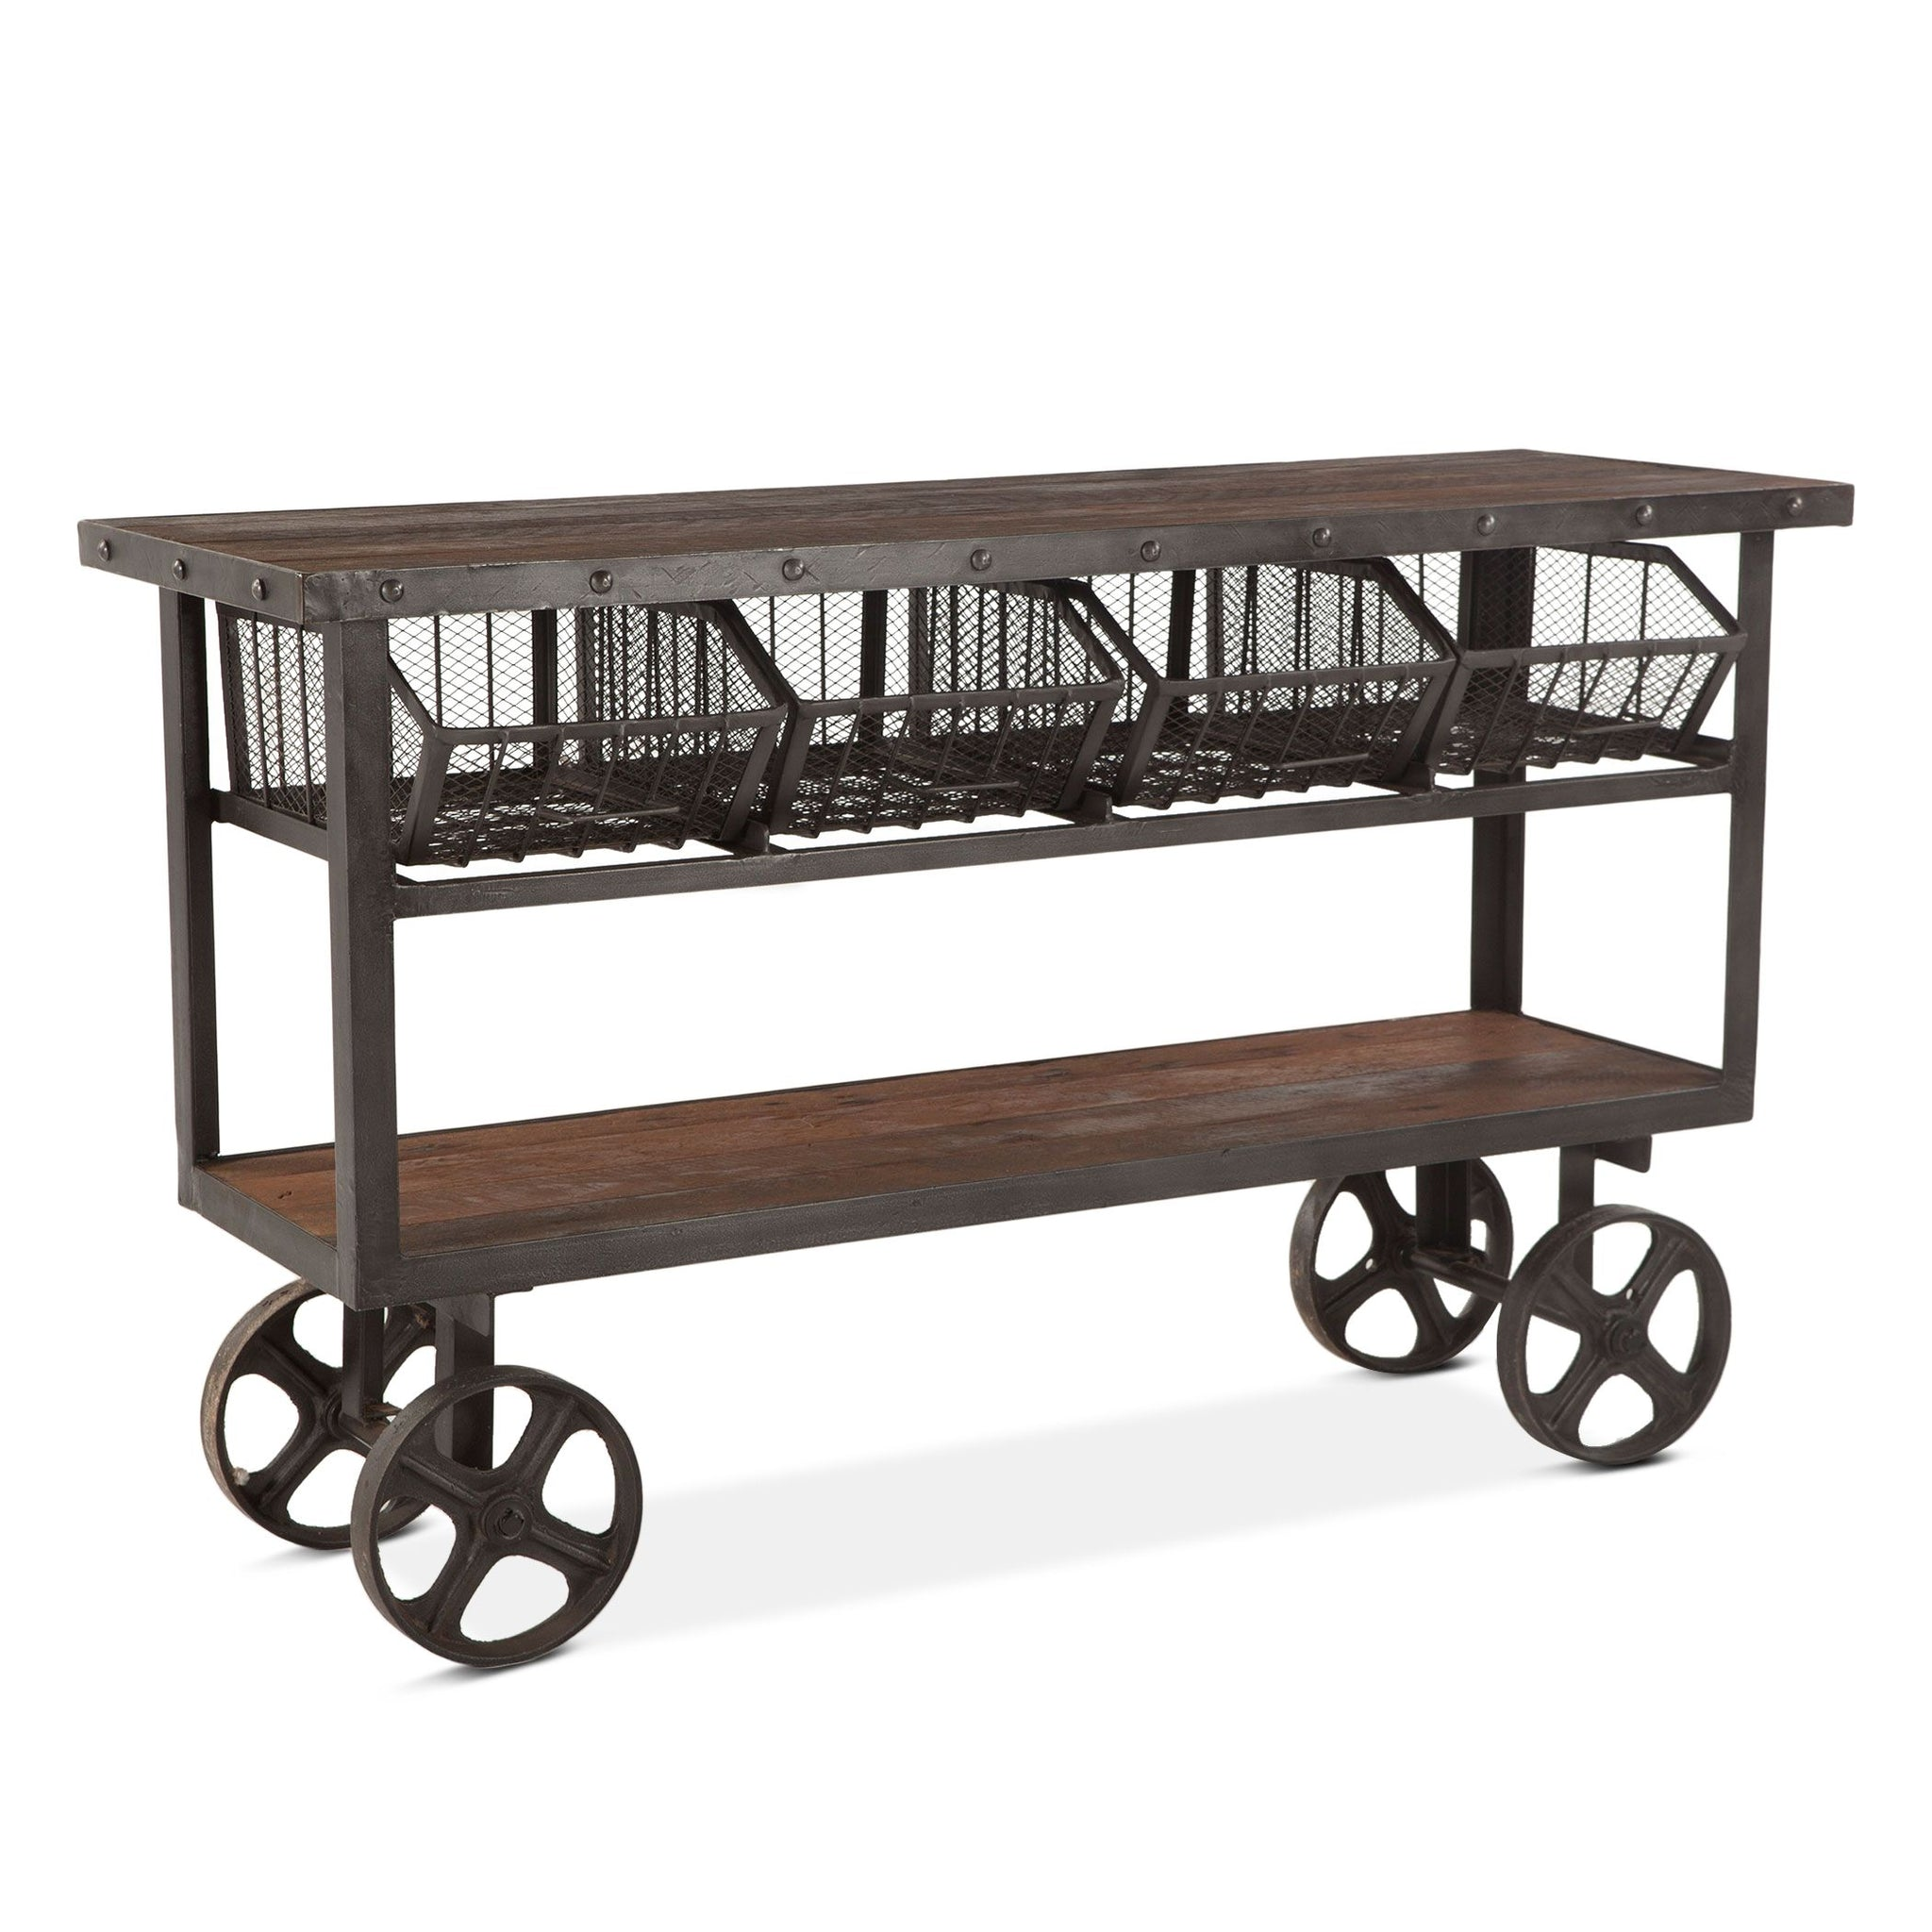 "Reclaimed Industrial Console Sofa Table Kitchen Cart  60"" - Furniture on Main"